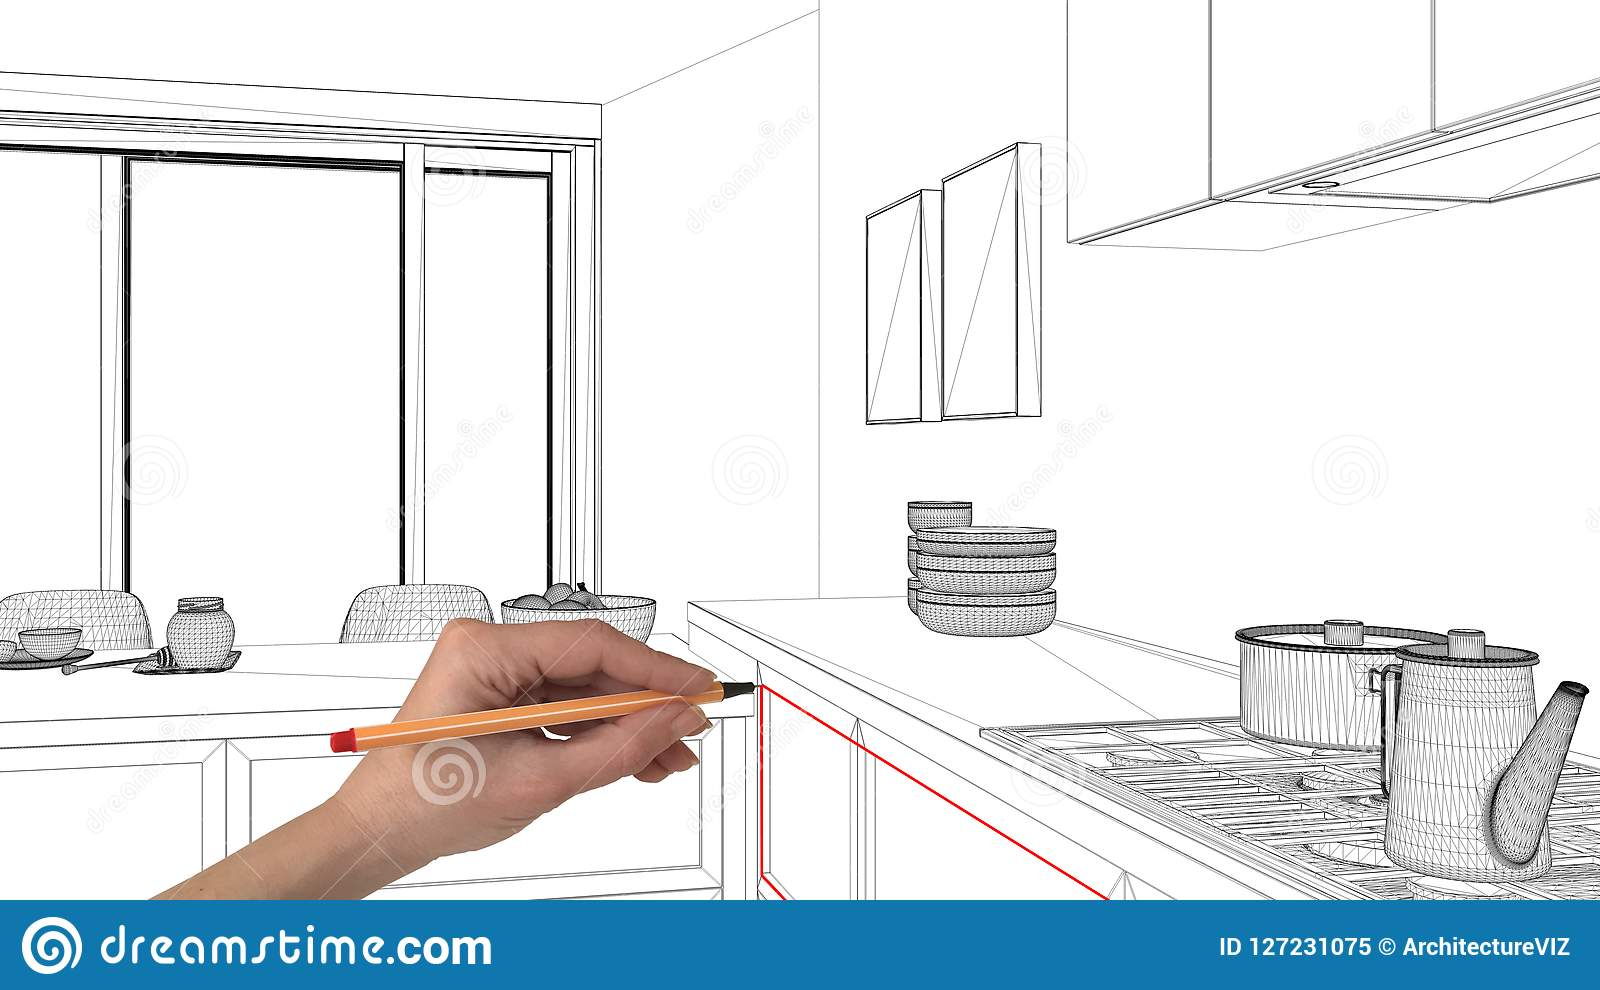 interior design project concept, hand drawing custom architecture, black  and white ink sketch, blueprint showing kitchen